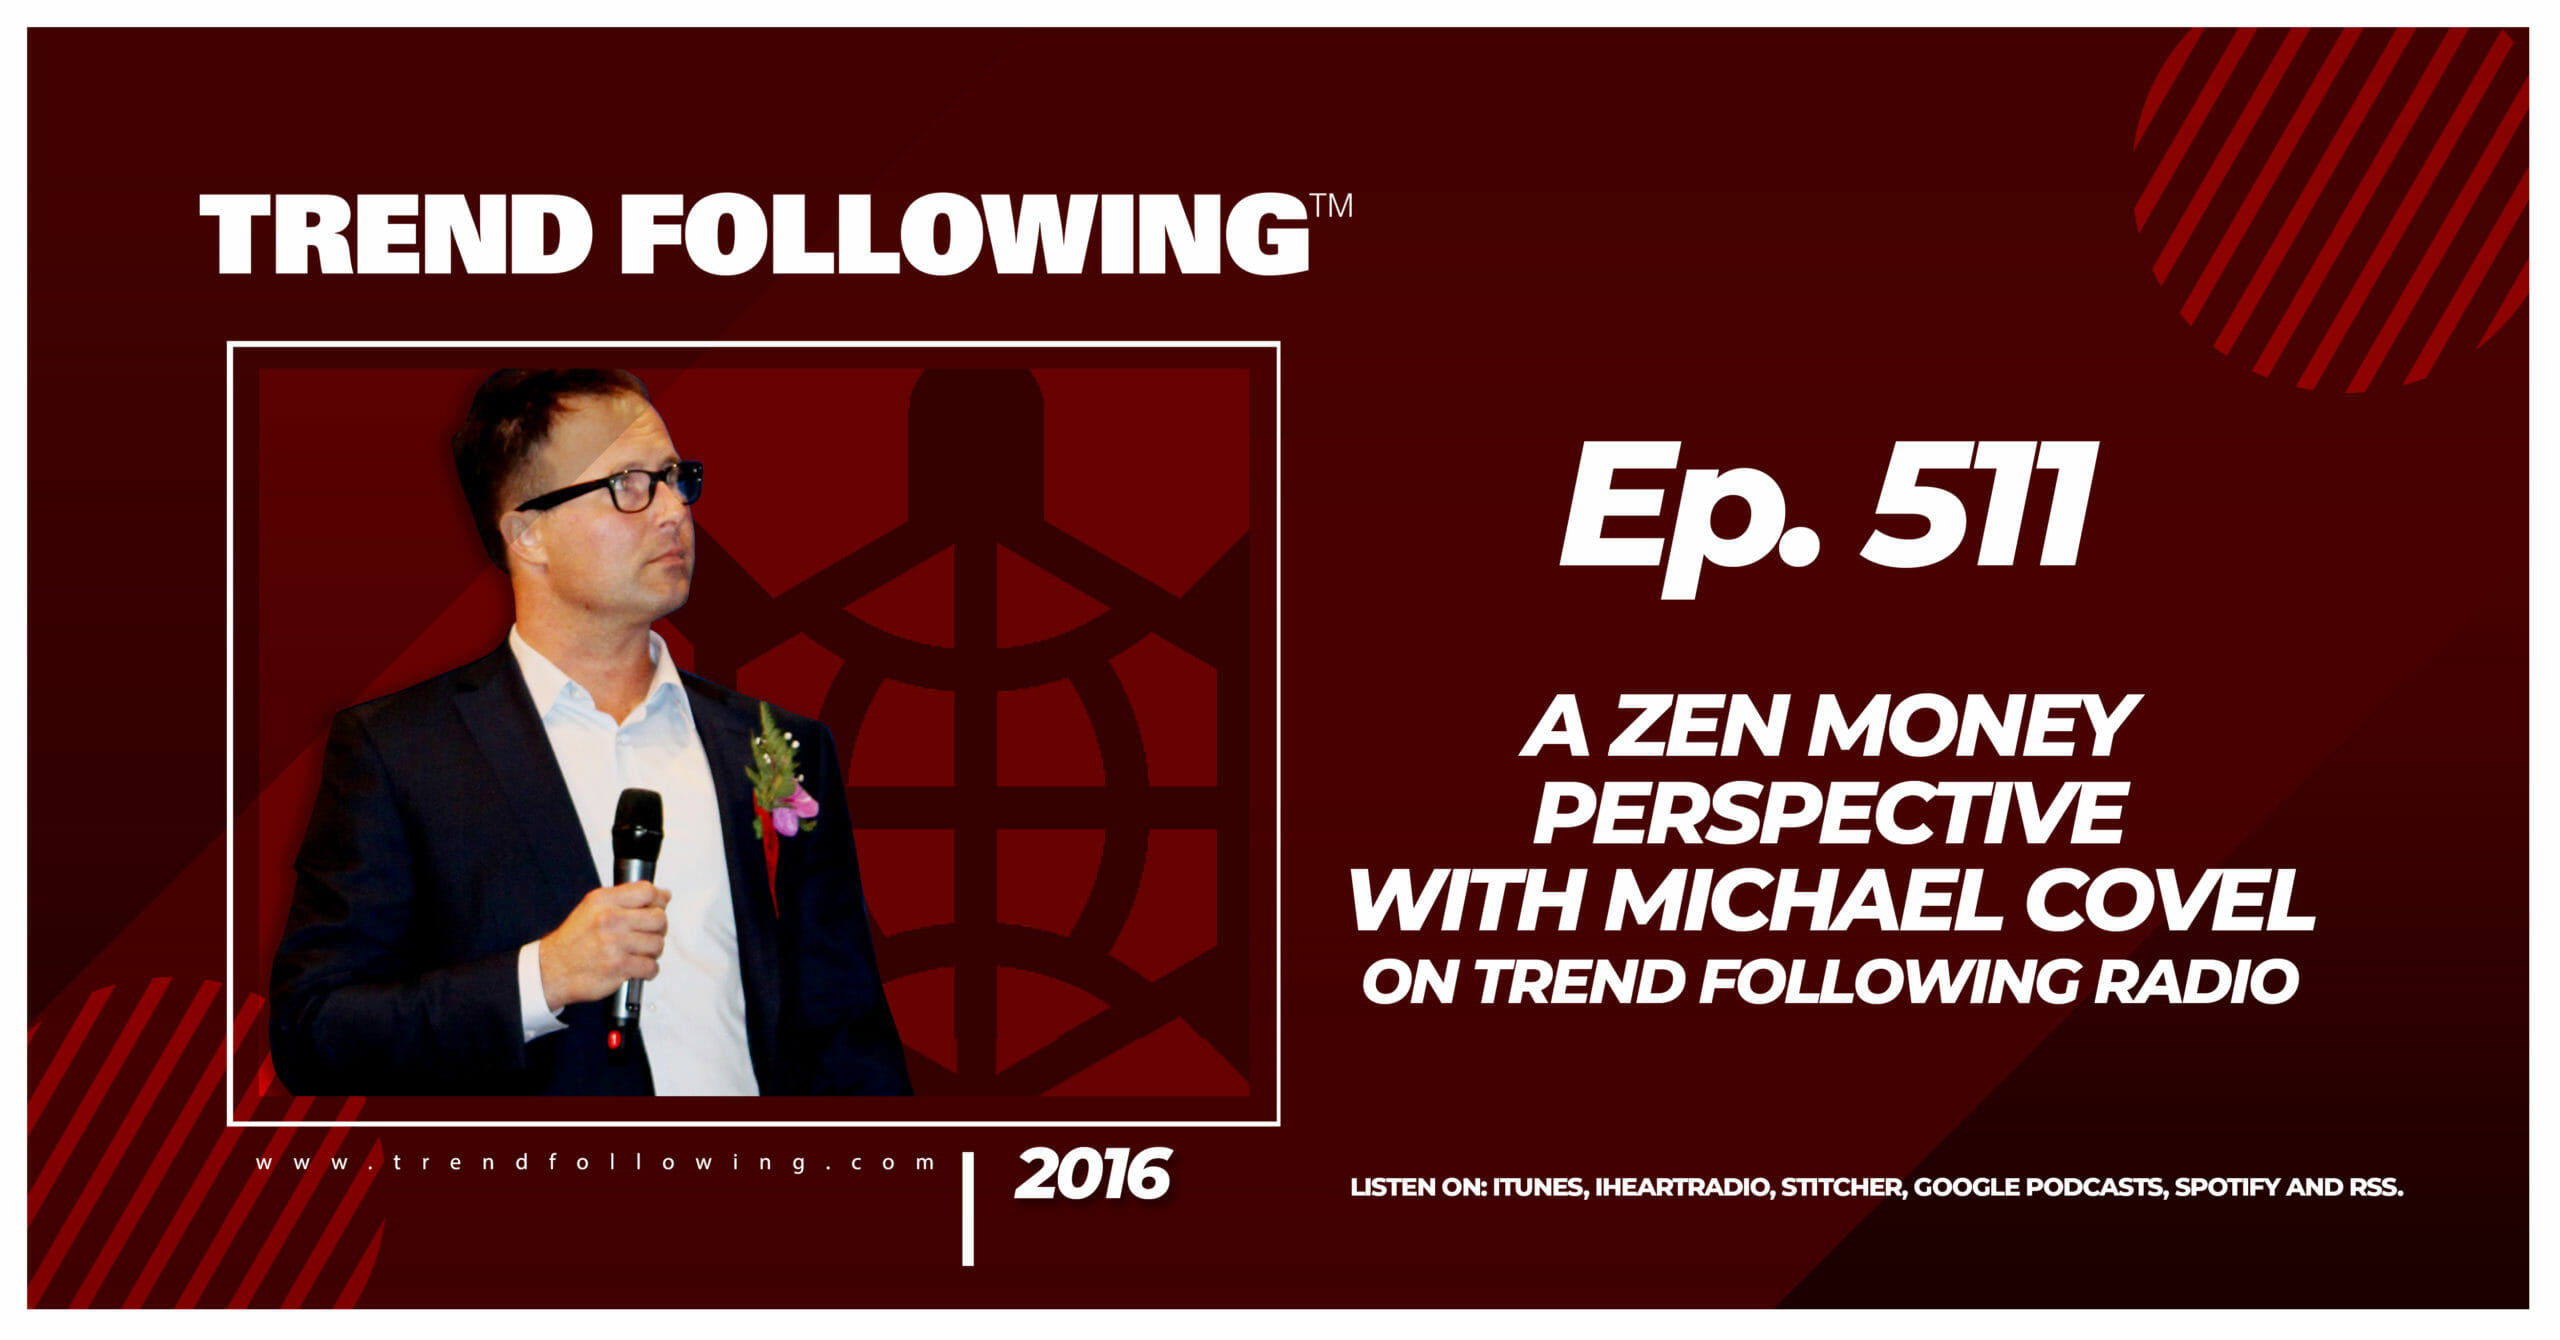 A Zen Money Perspective with Michael Covel on Trend Following Radio